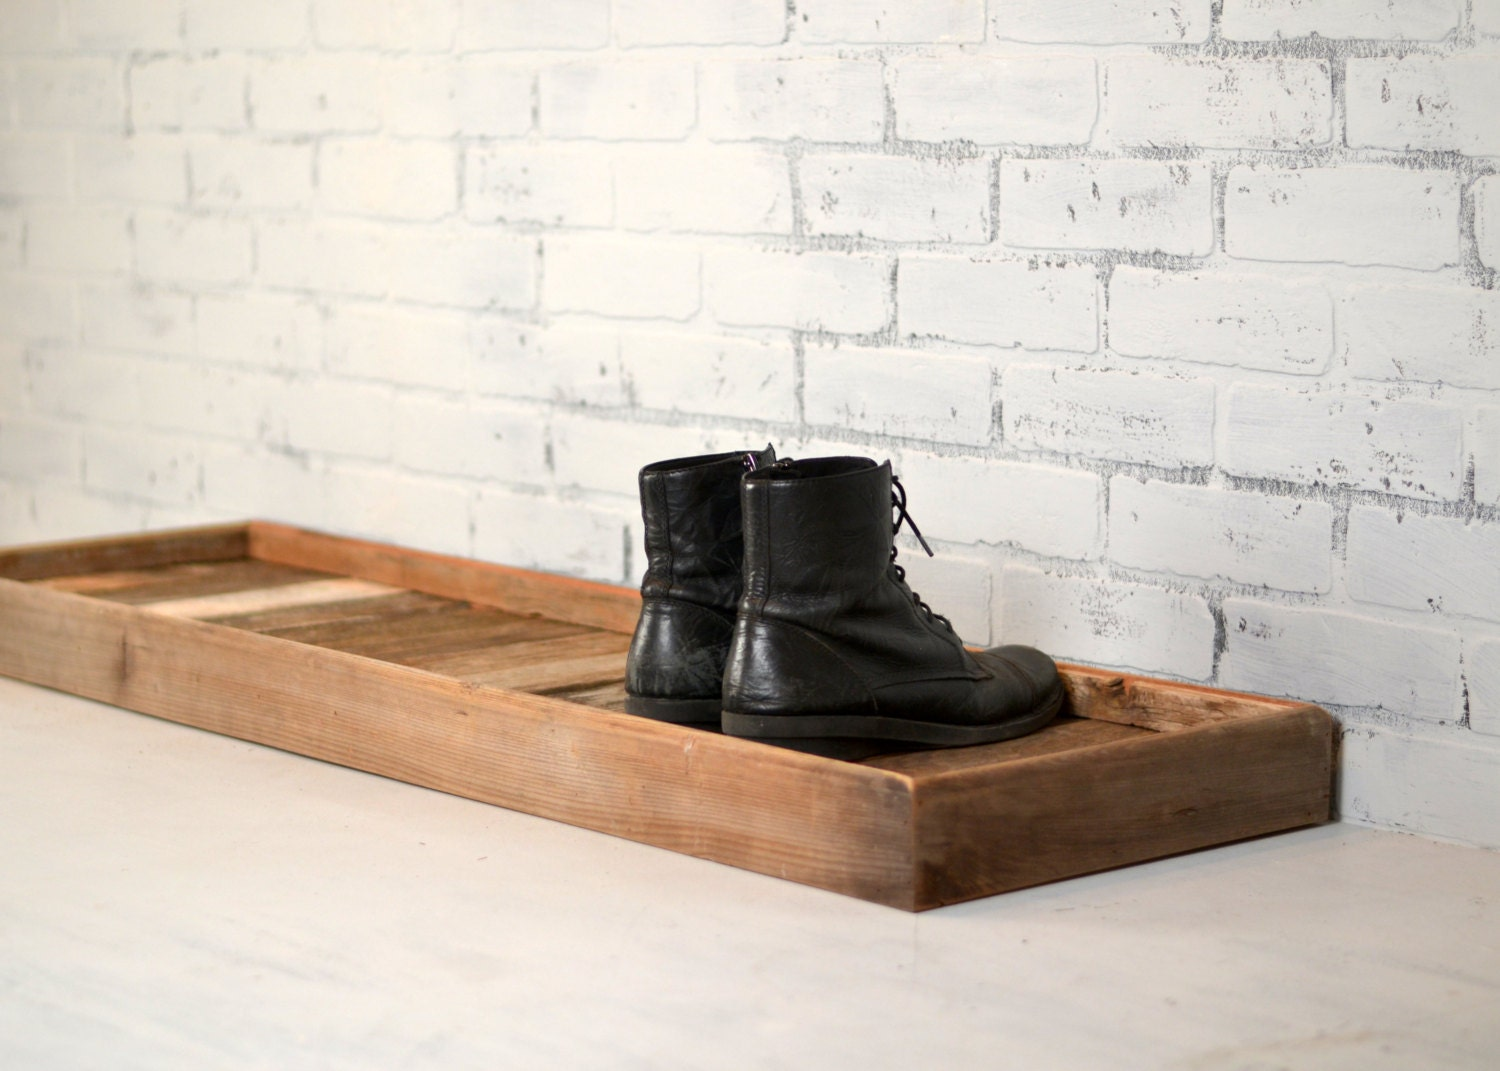 Etonnant Boot Tray Made From Reclaimed Wood   Shoe Storage Entryway Organization    36 Inches Long By 15 Inches Wide   Customizable